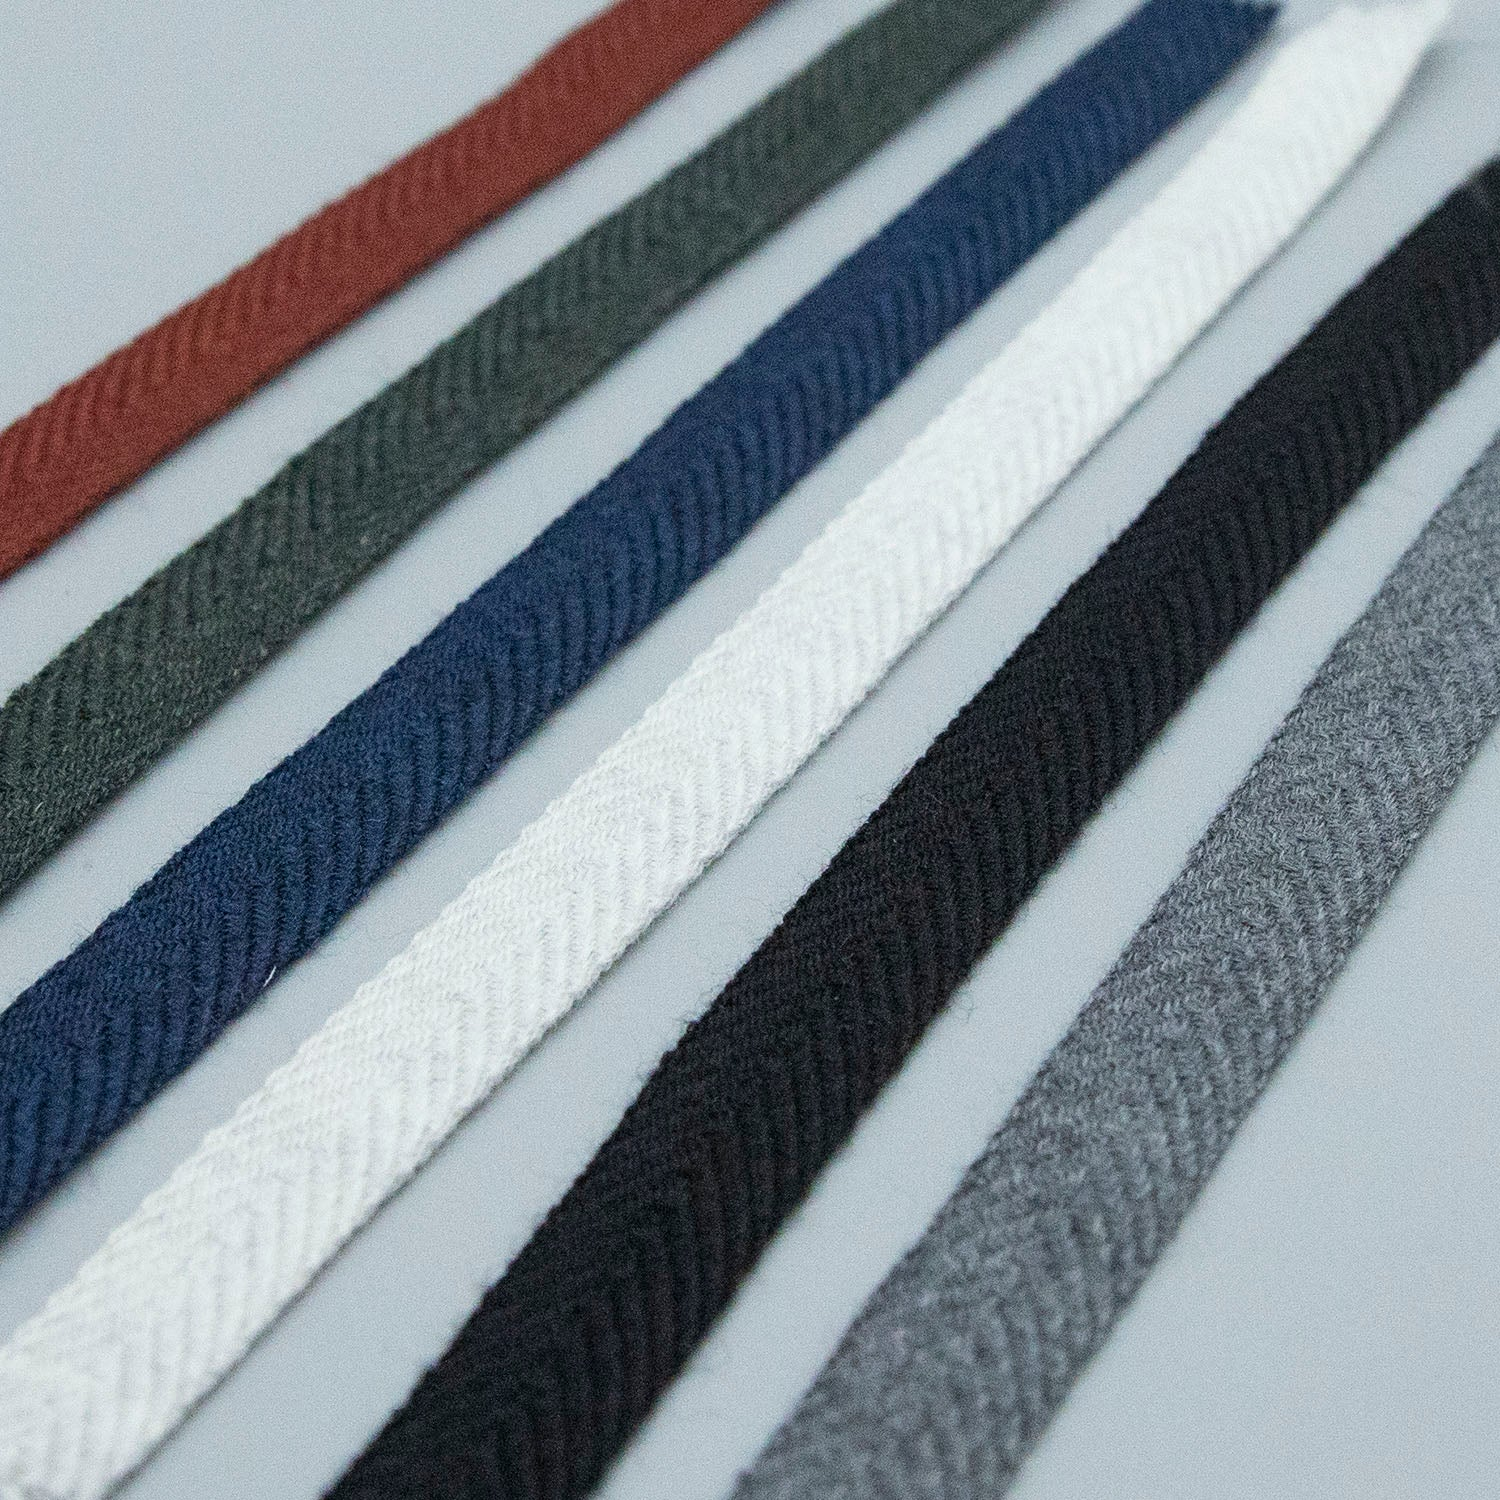 Wool Twill Tape in Various Colors - sold by the yard